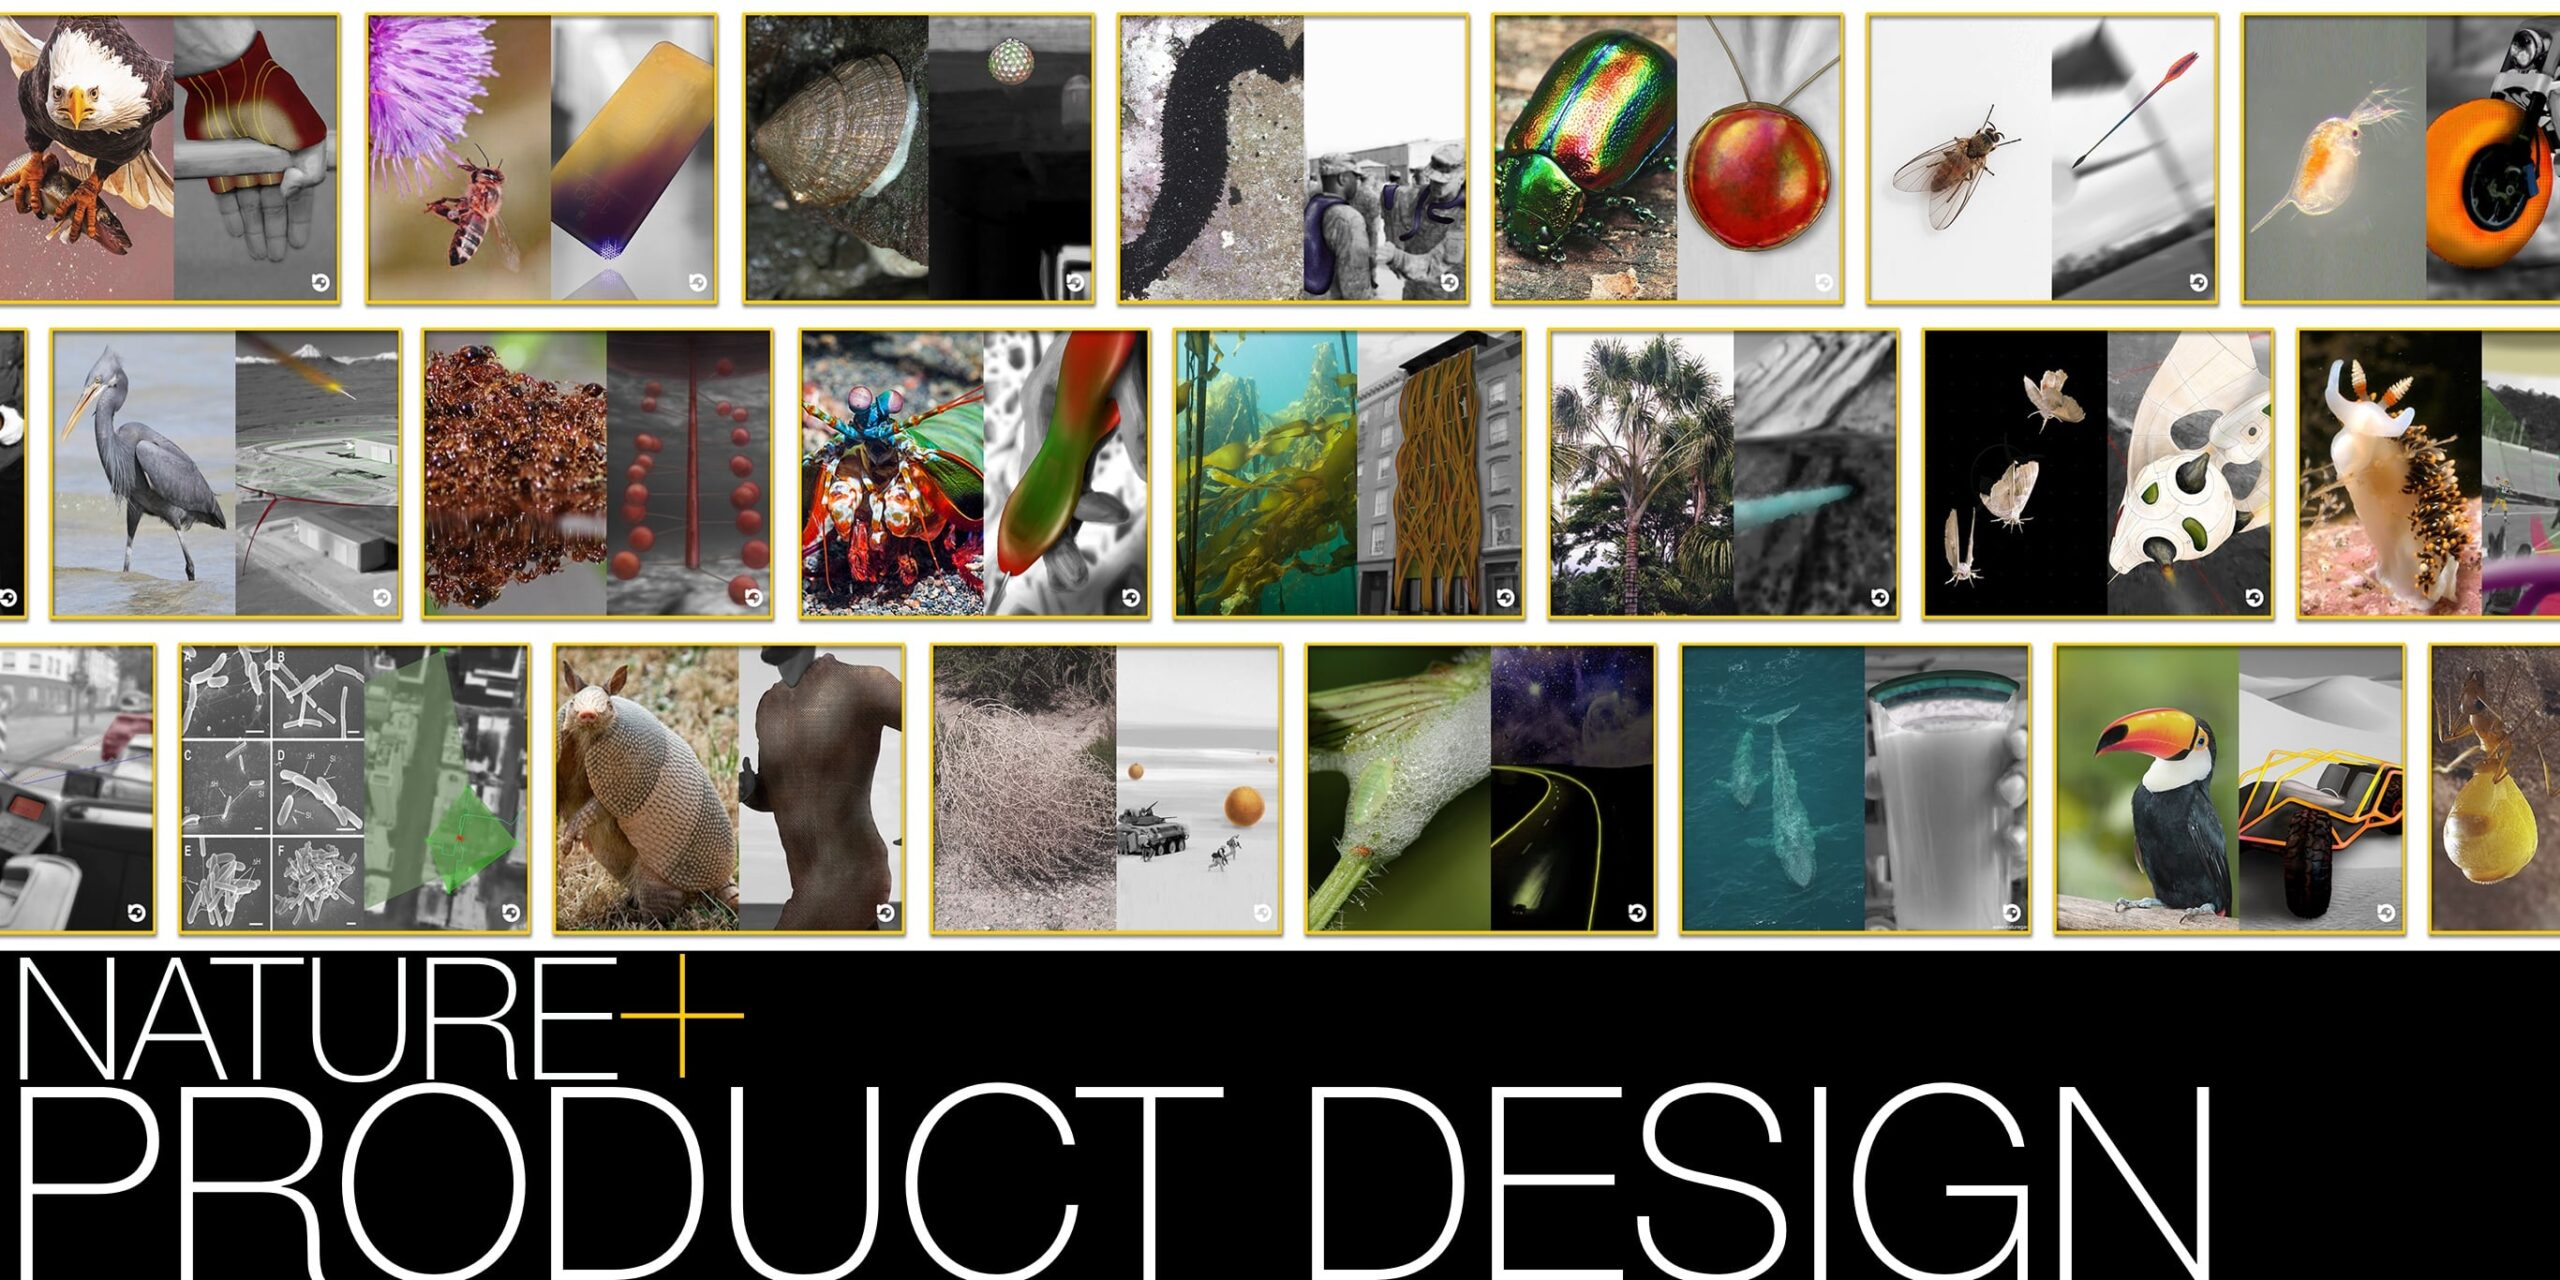 Product Design by Umair Zia- founder of Nature Gadgets and NatureTutor.com